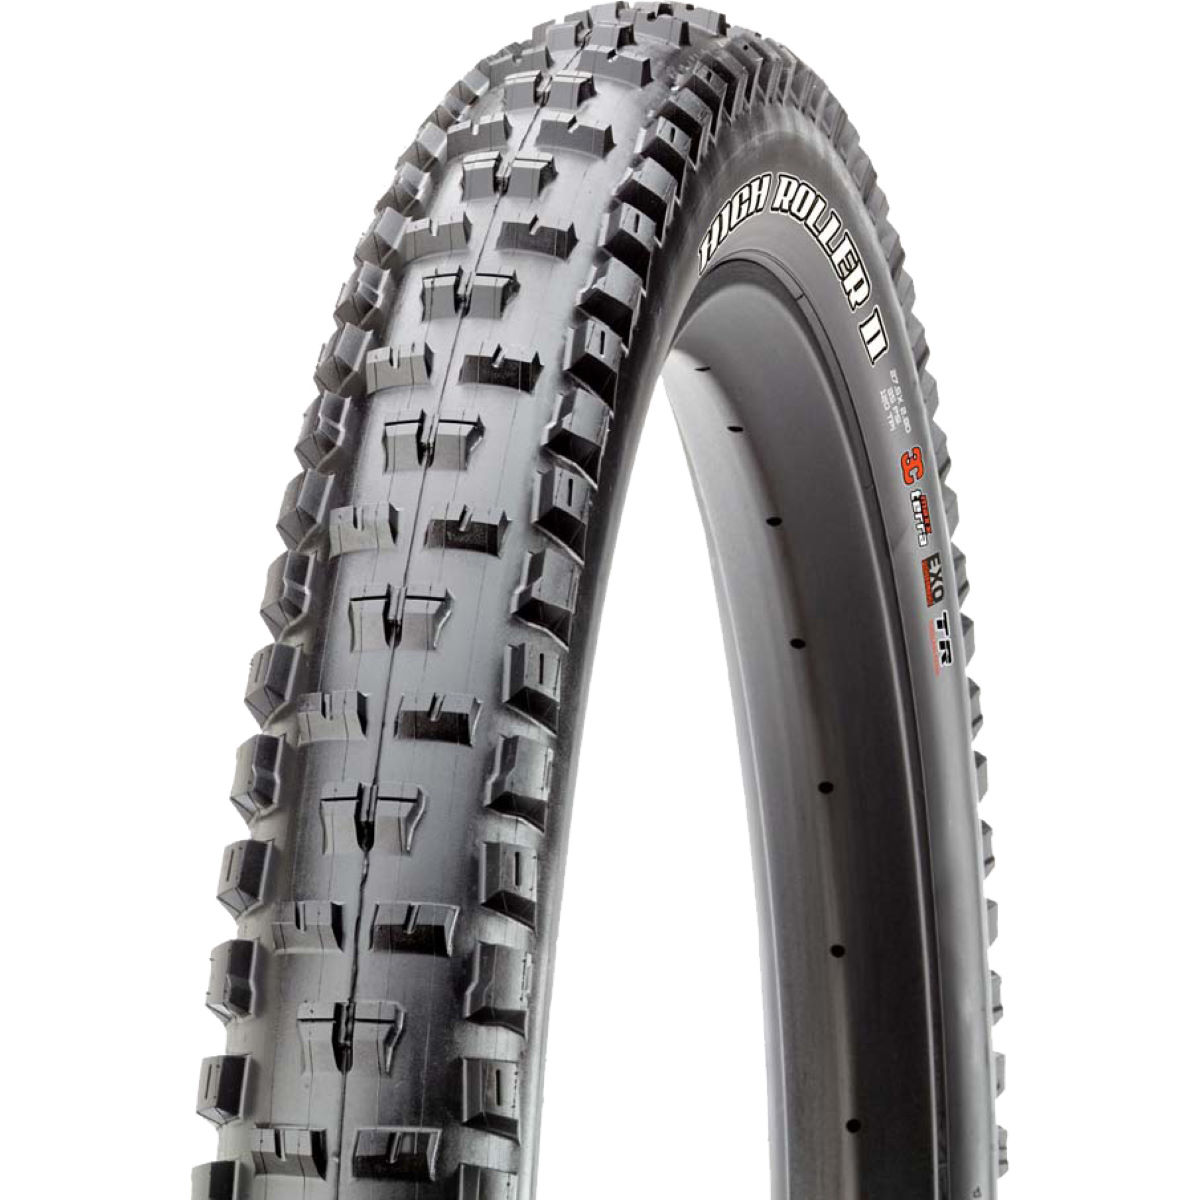 Maxxis Maxxis High Roller II Plus Tyre - 3C - EXO - TR   Tyres